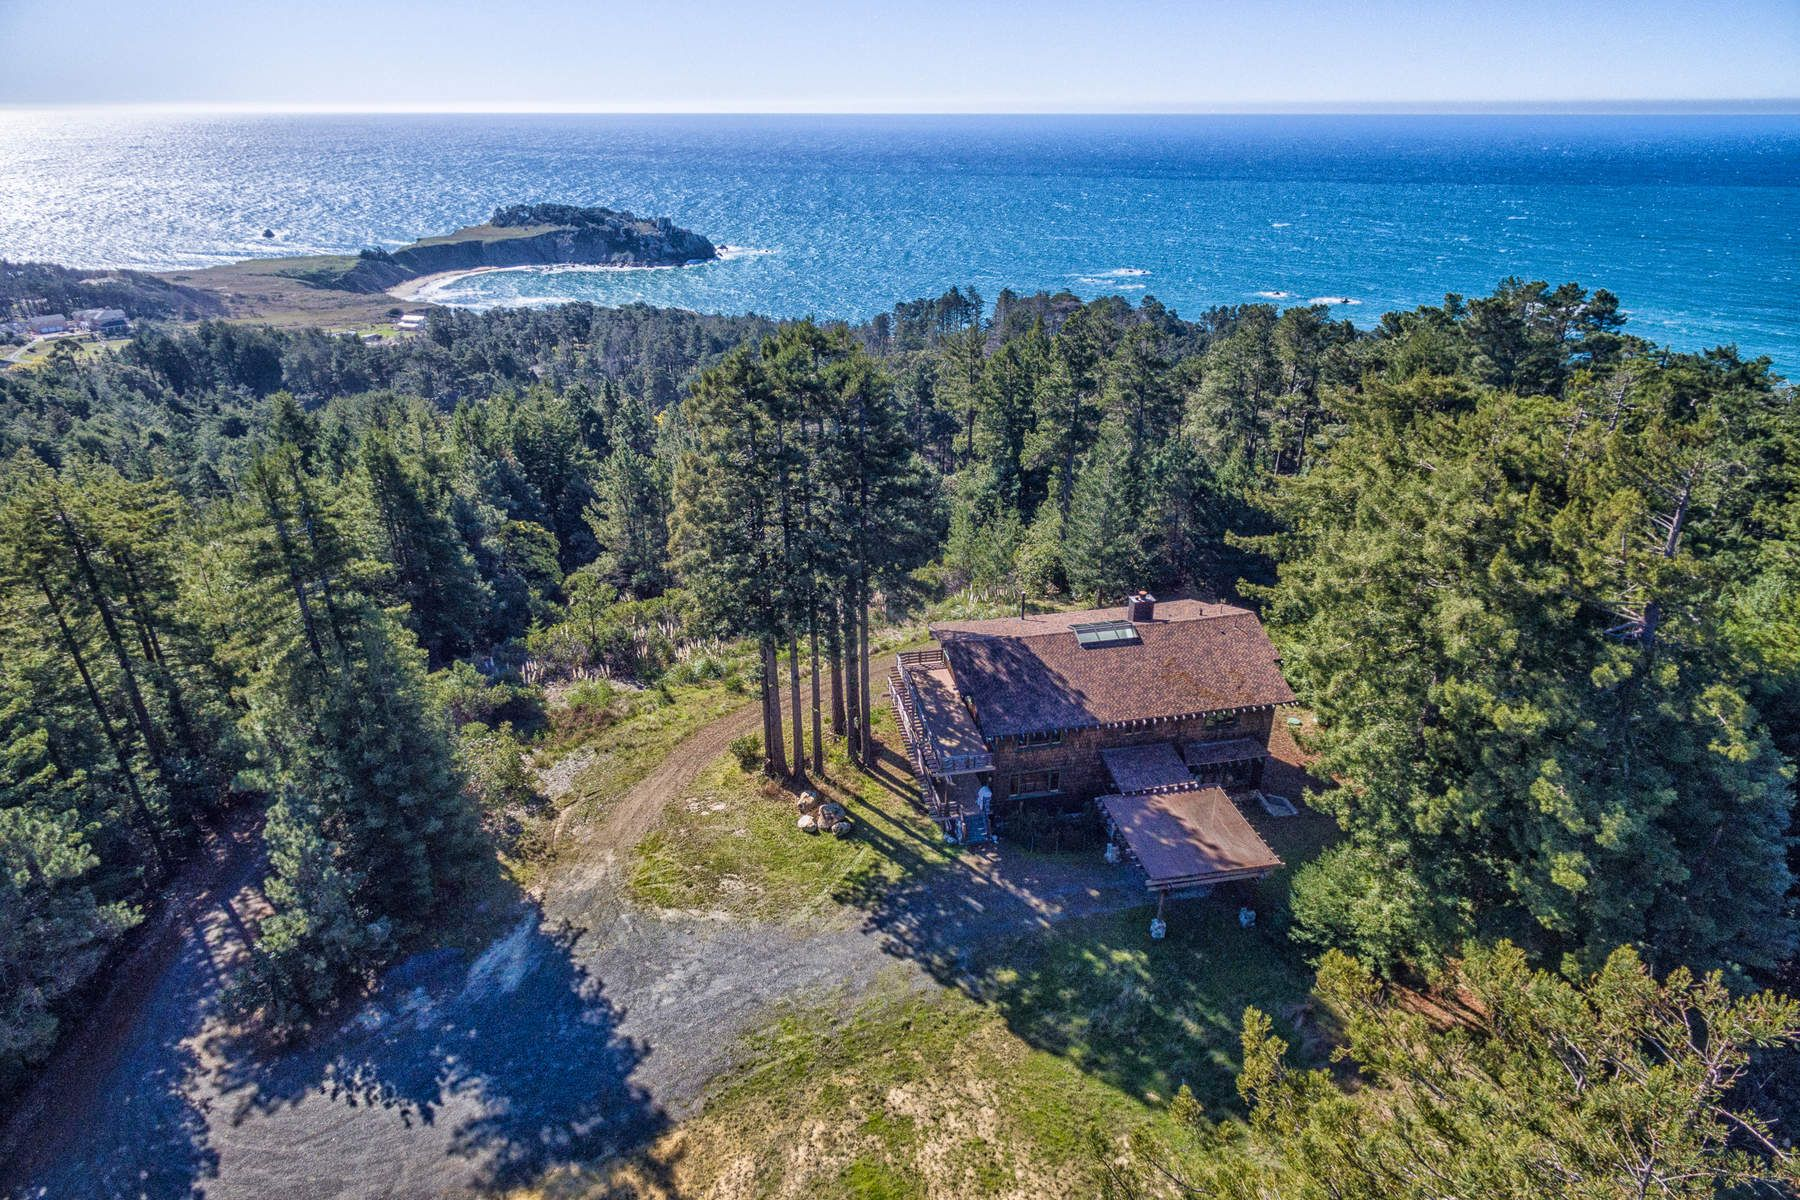 Single Family Home for Sale at Coastal Country Estate 33651 S Highway 1 Gualala, California 95445 United States